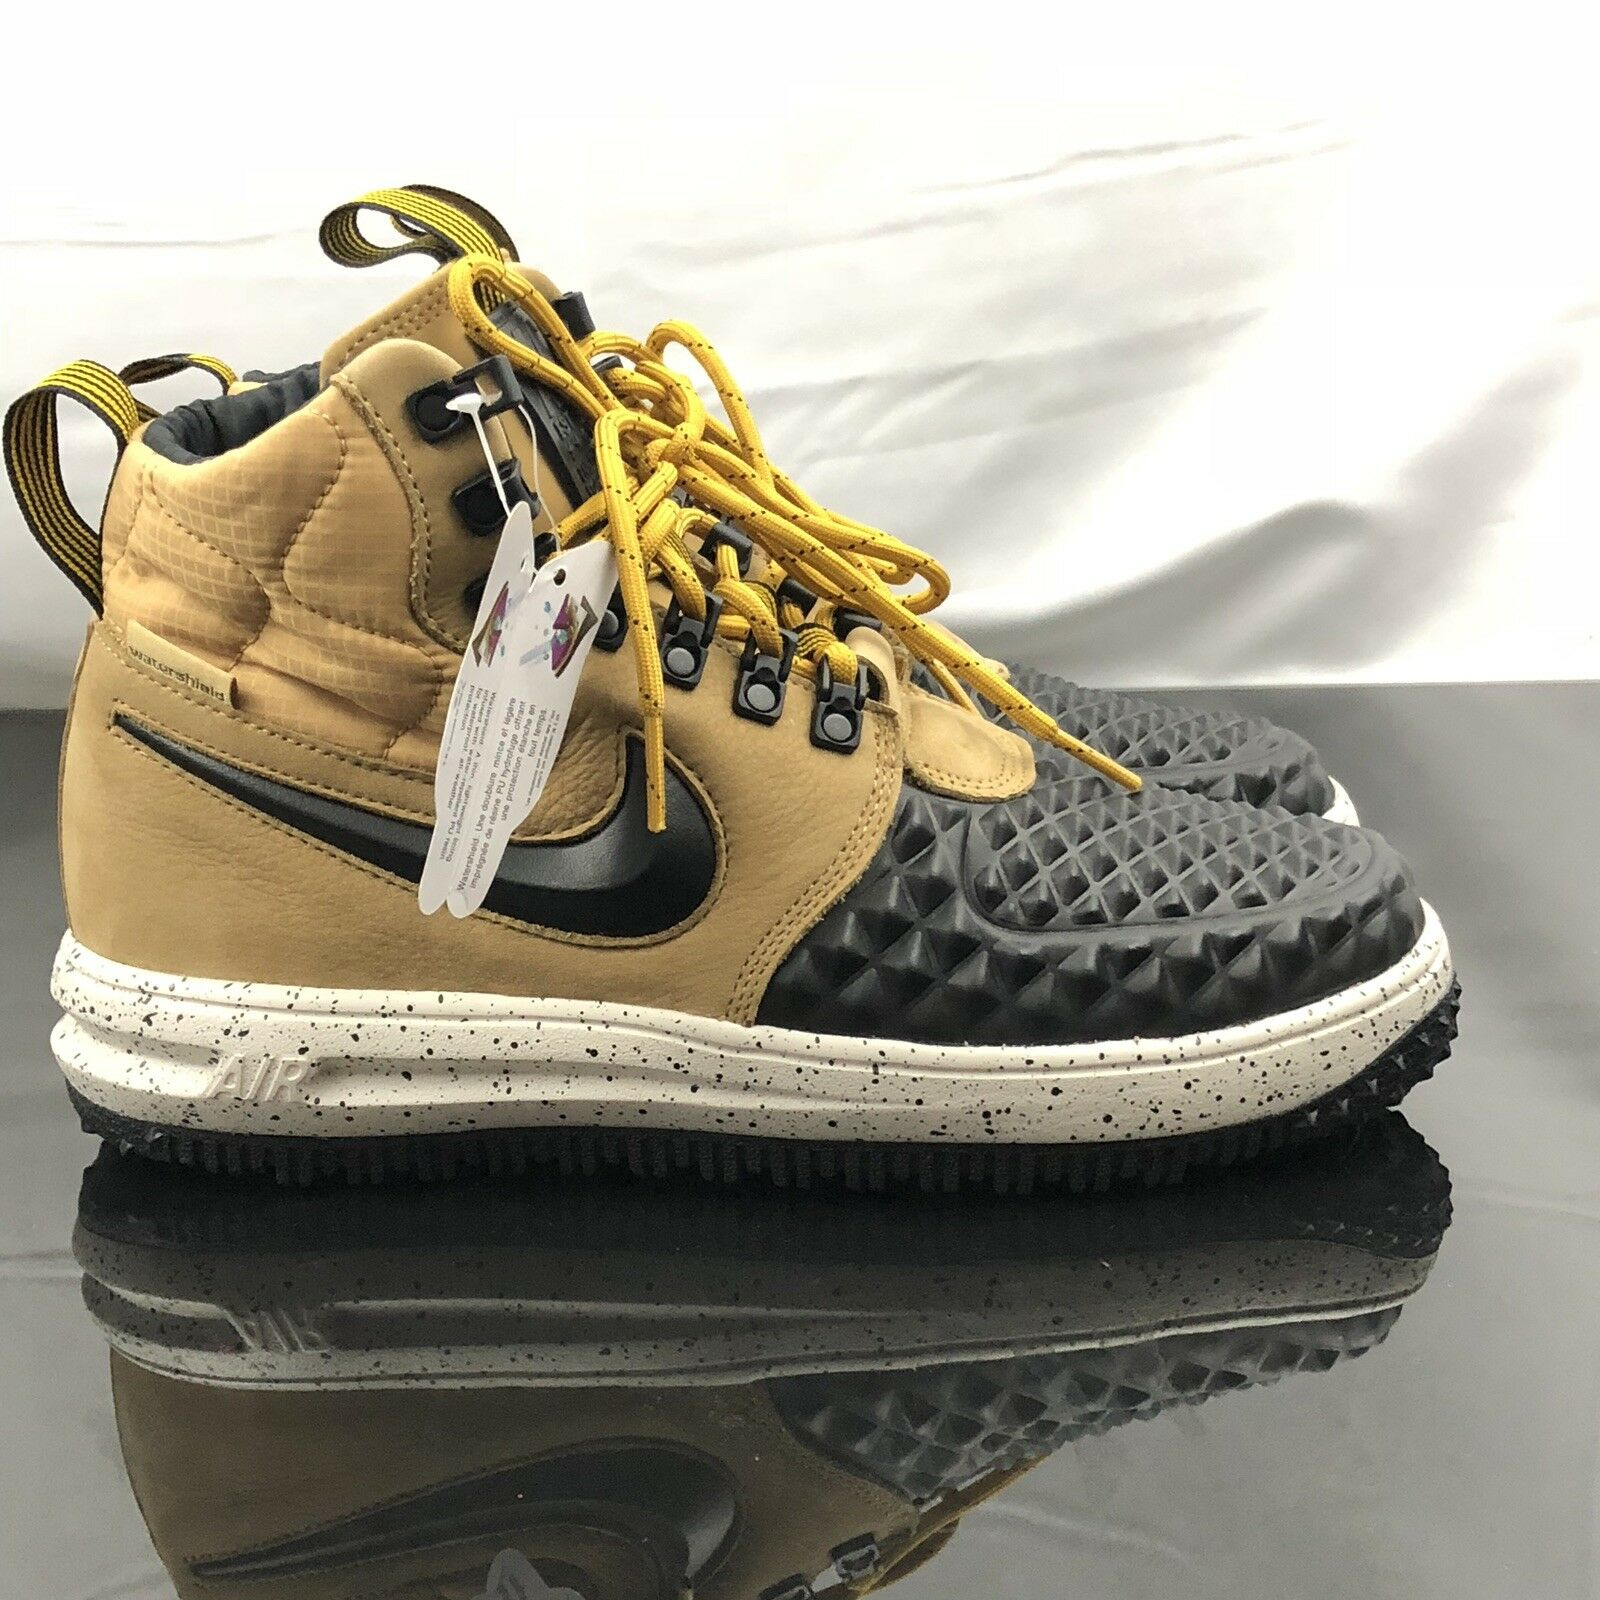 Nike Lunar Force 1 Duckboot '17 Mens gold Black Bone 916682-701